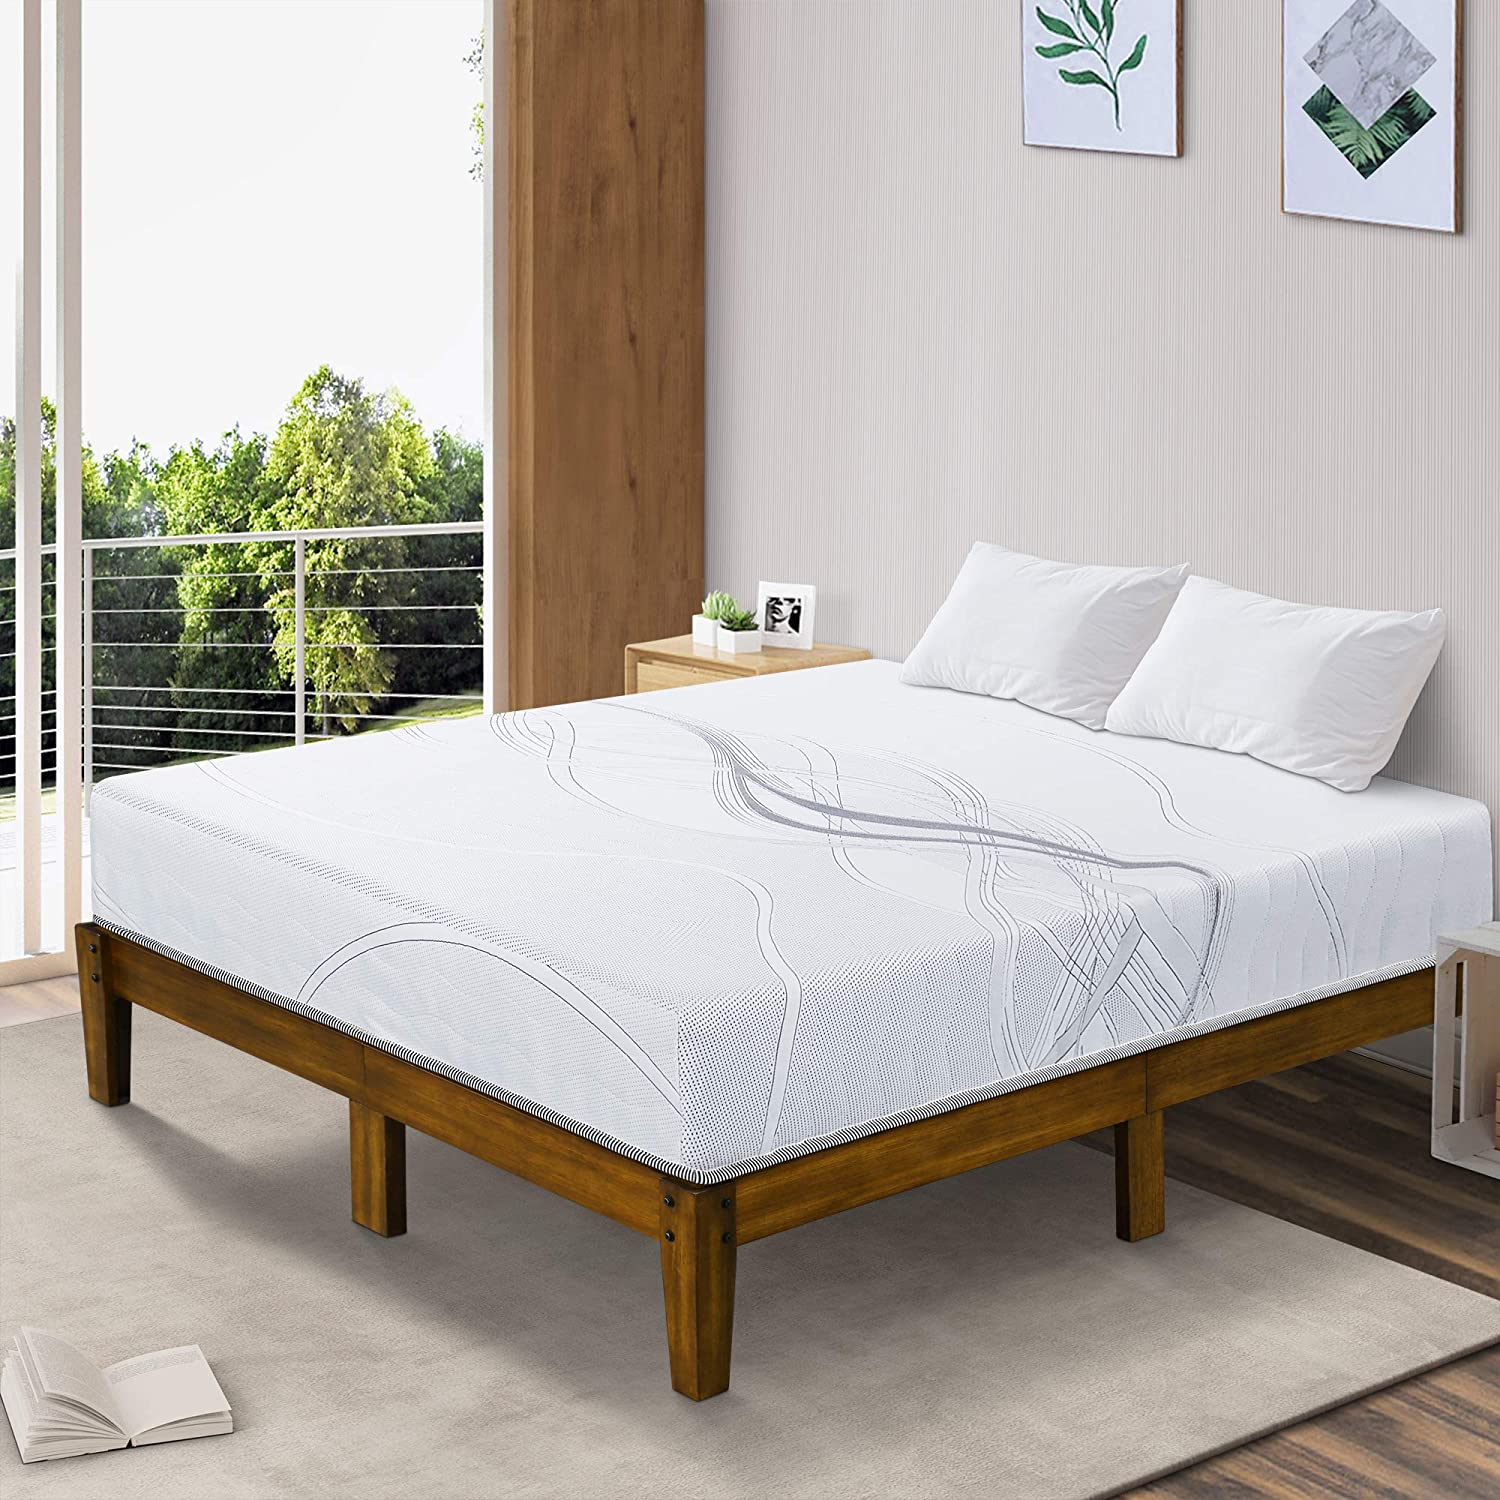 Olee Sleep 10 inch Spring Mattress OL10SM03T